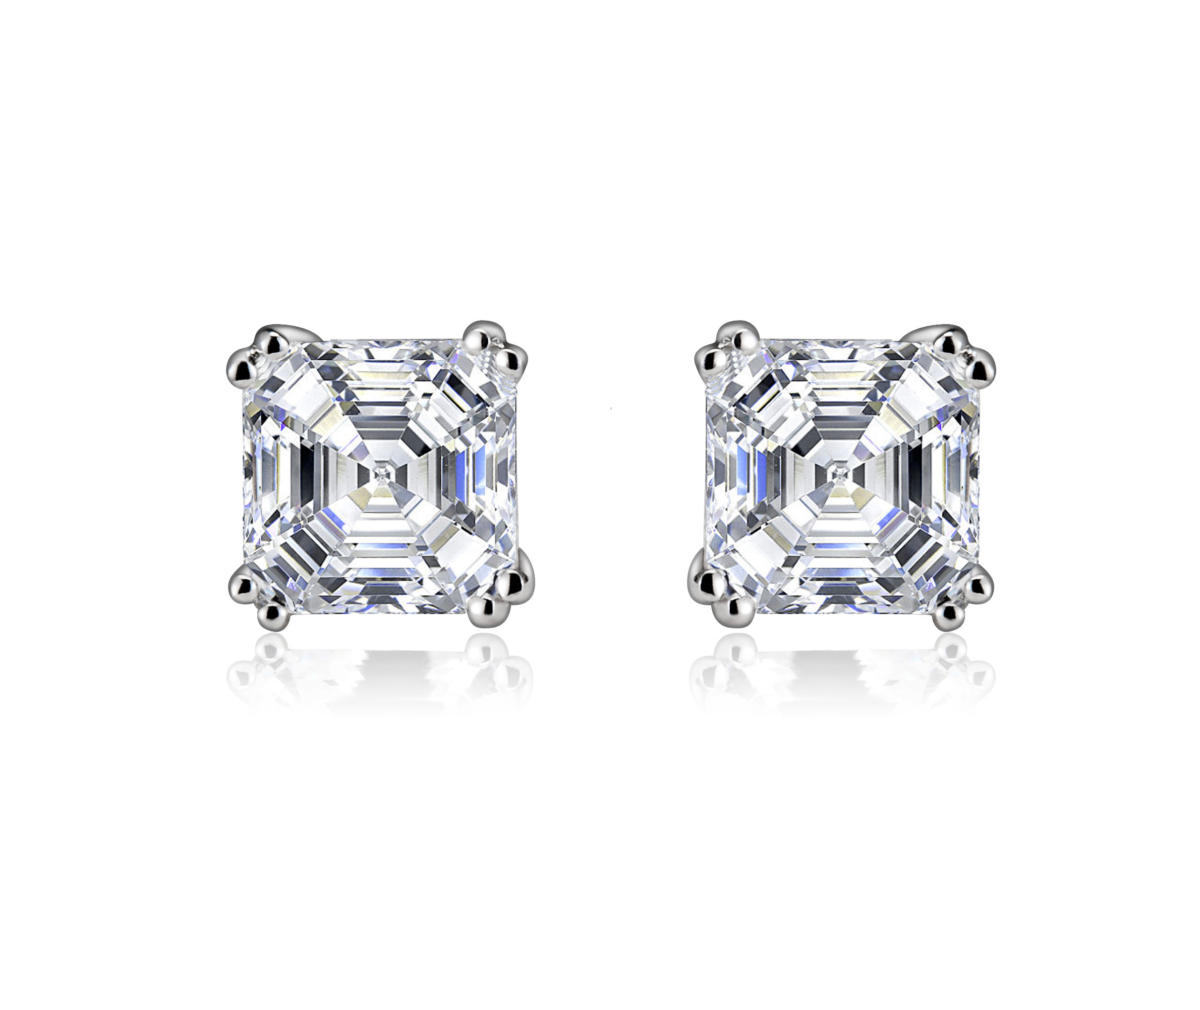 Flawless Cubic Sterling Silver Assher Cut Square Stud Earrings